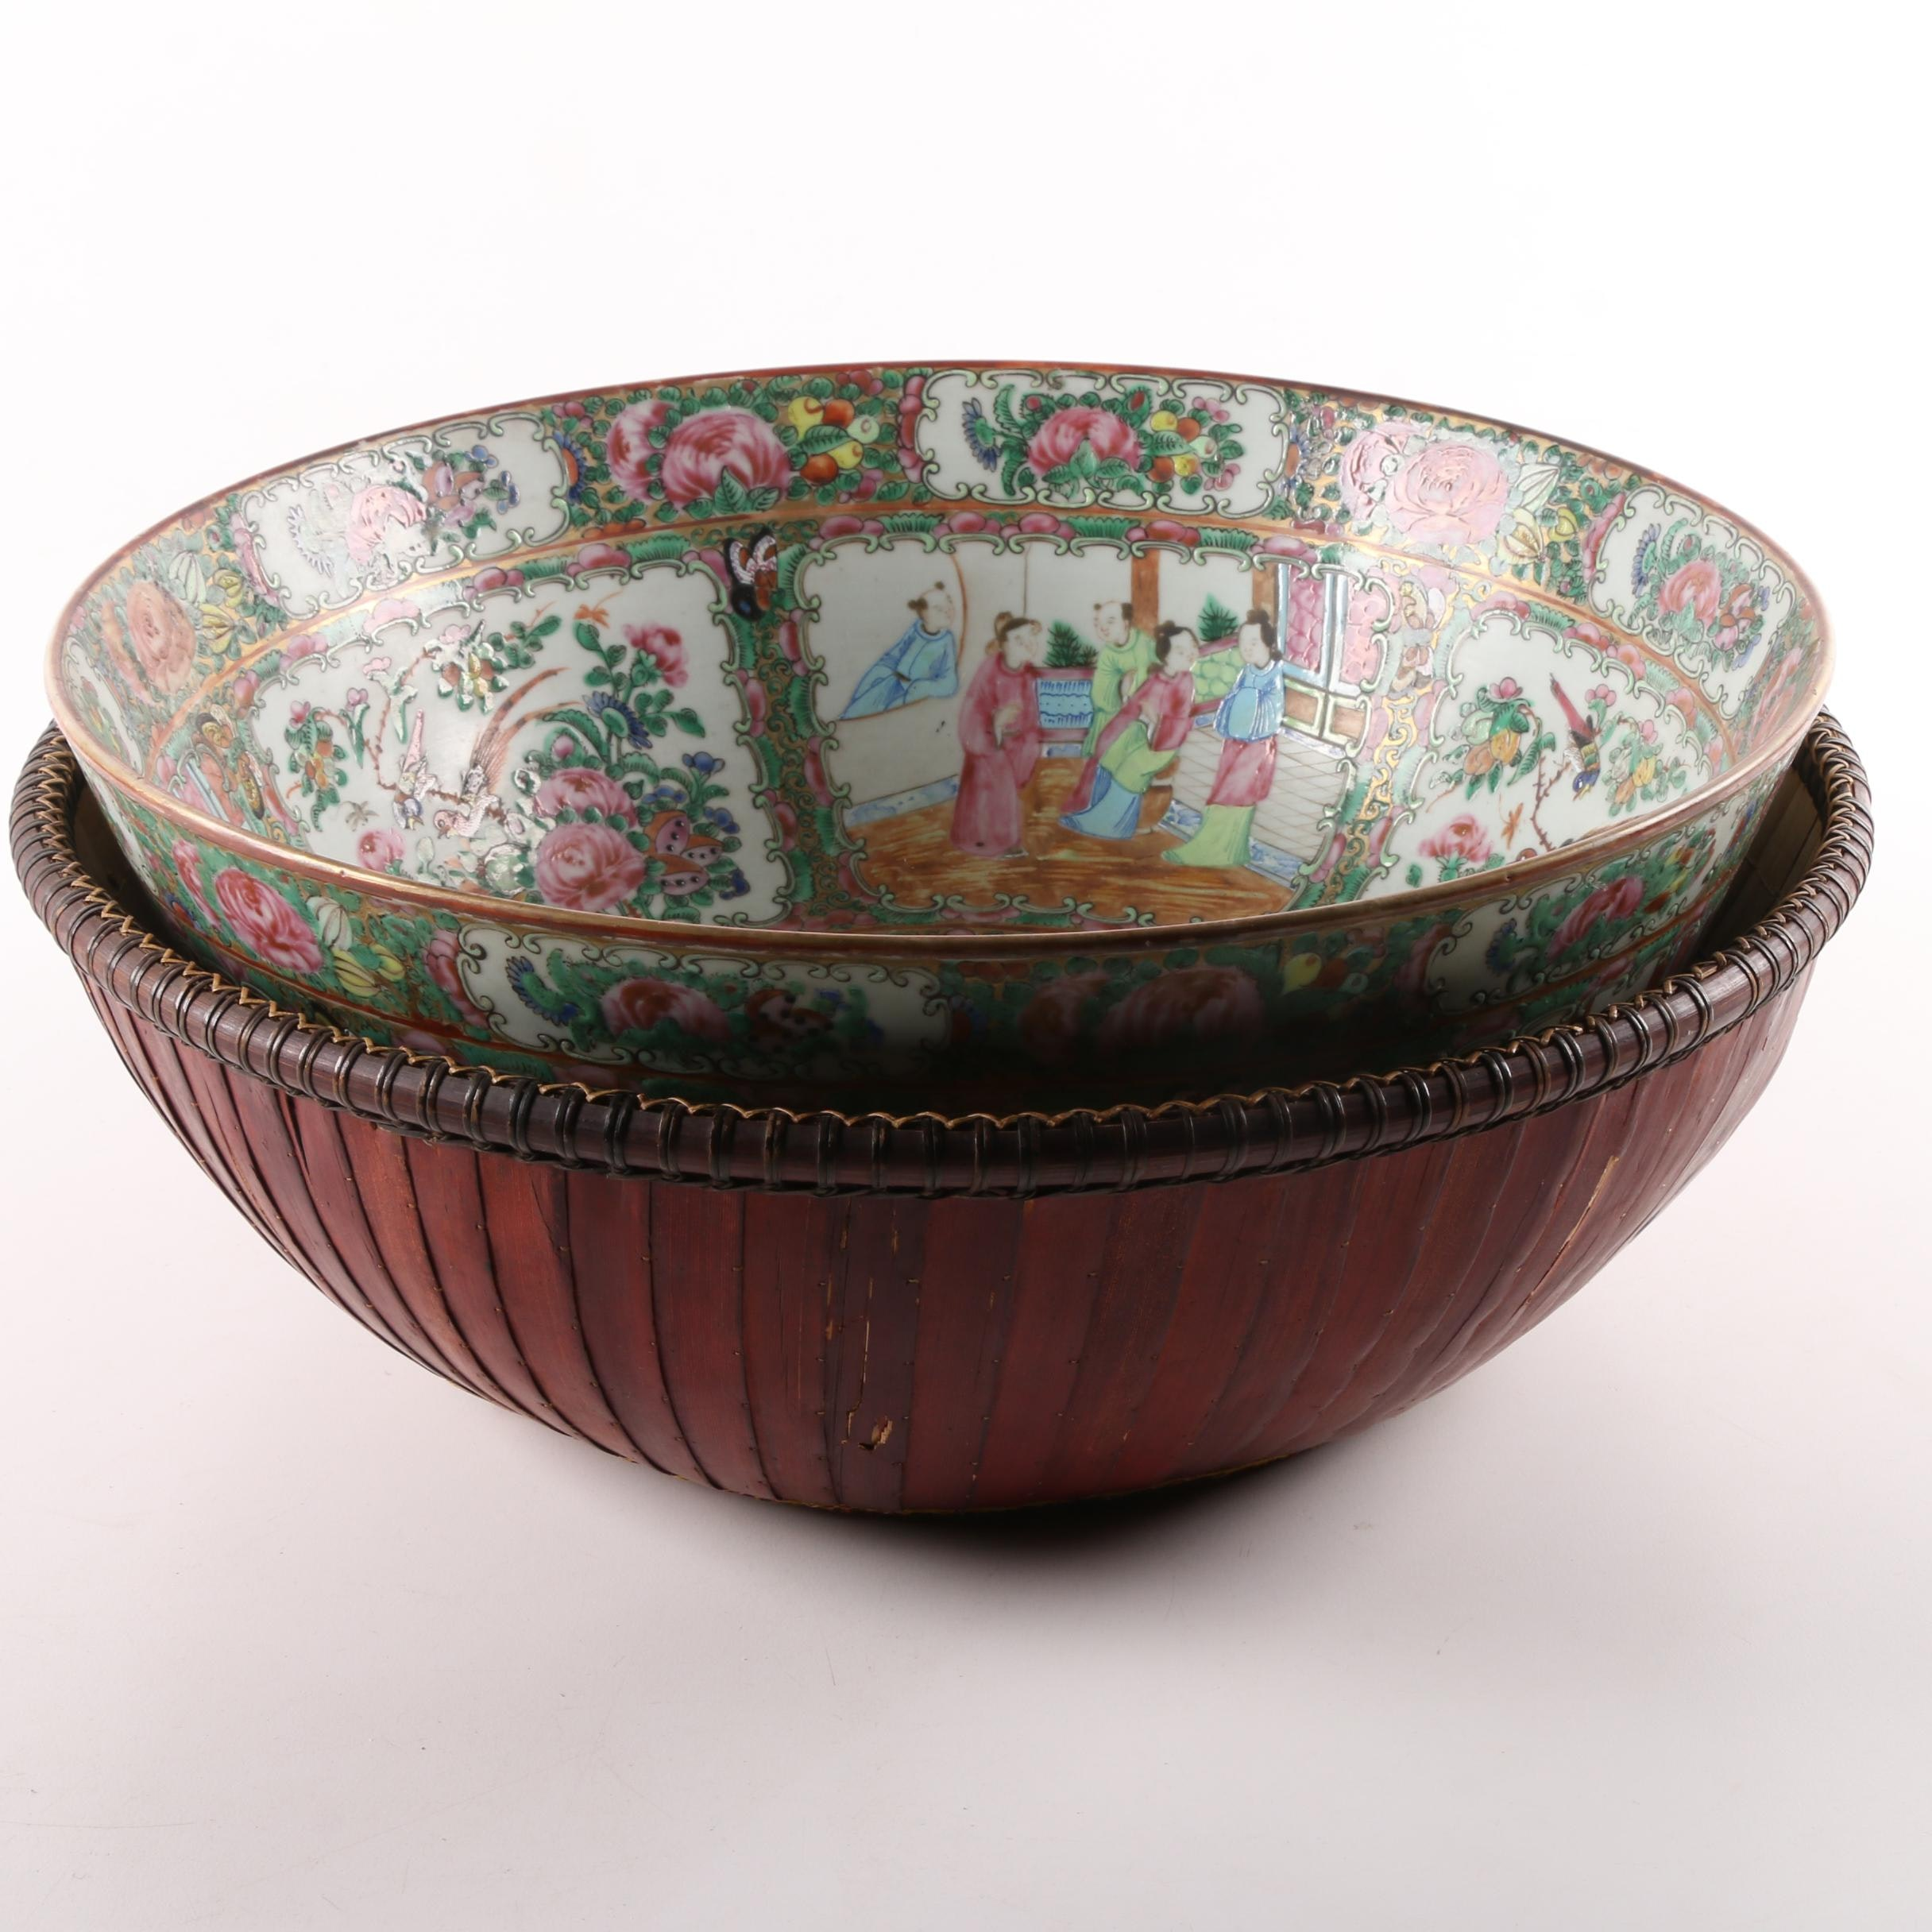 Chinese Rose Medallion Porcelain Bowl with Woven Bowl